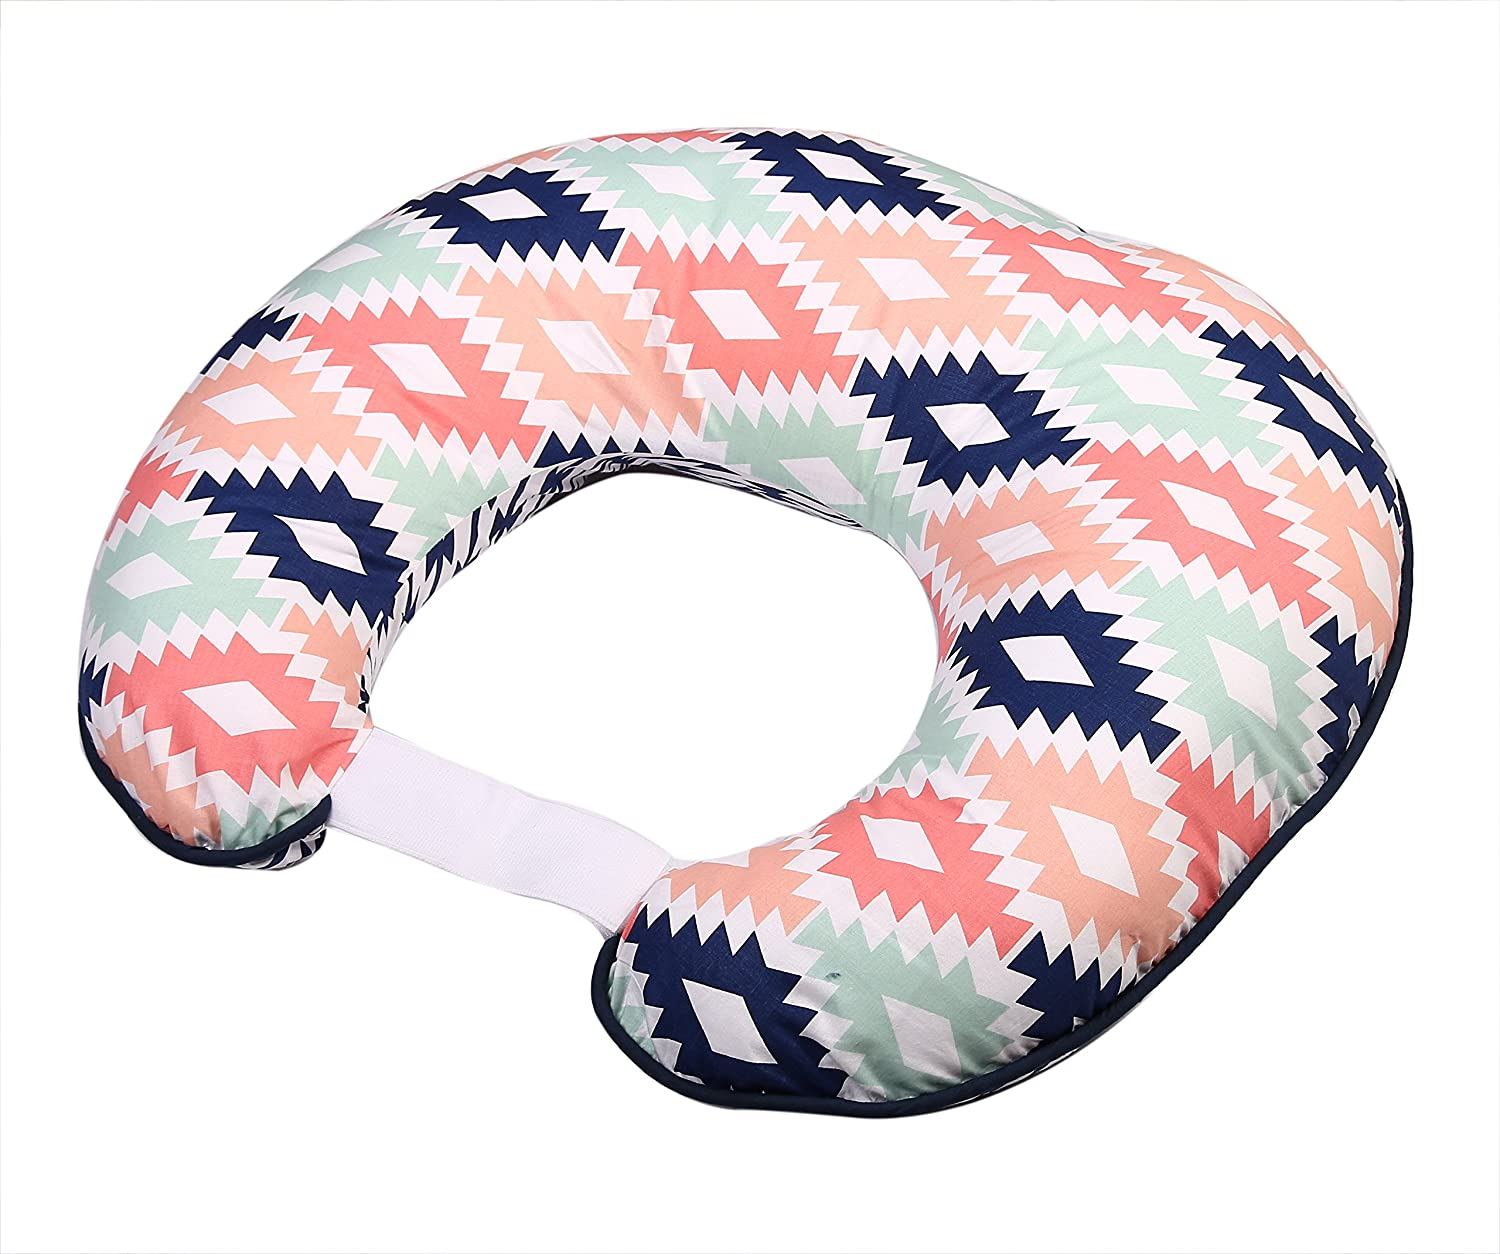 Bacati - Aztec Nursing Pillow Ultra-Soft 100% Cotton Fabric in a Fashionable Two-Sided Design, Fits All Hugster Nursing Pillows and Positioners (Pillow Cover Only, Coral/Mint//Navy)